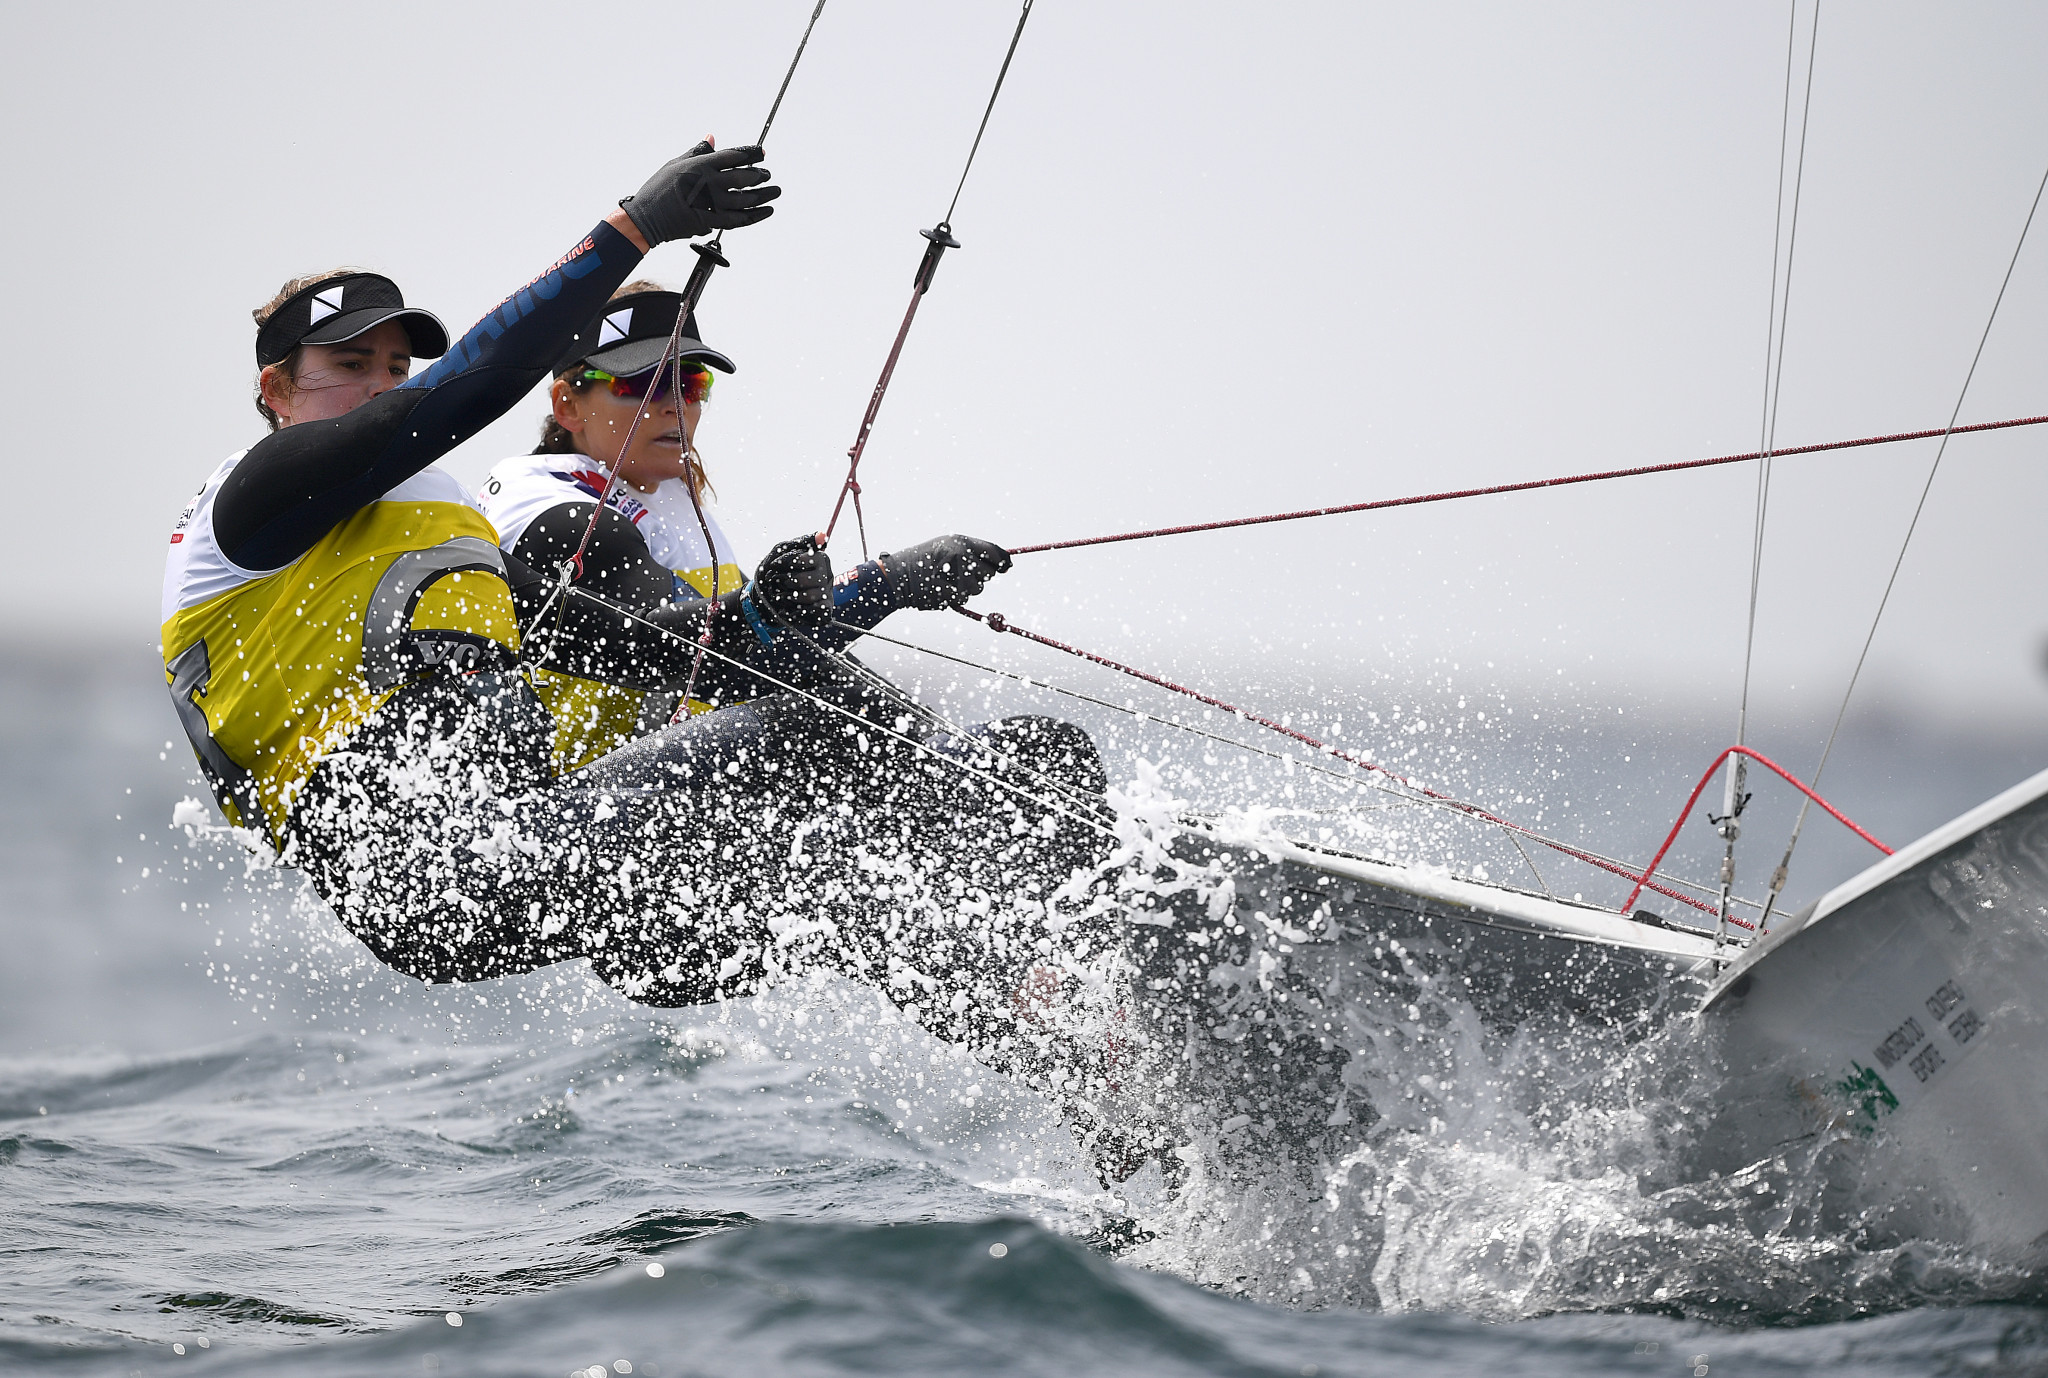 Brazil's Martine Grael and Kahena Kunze still have a healthy lead in the 49erFX ©Getty Images